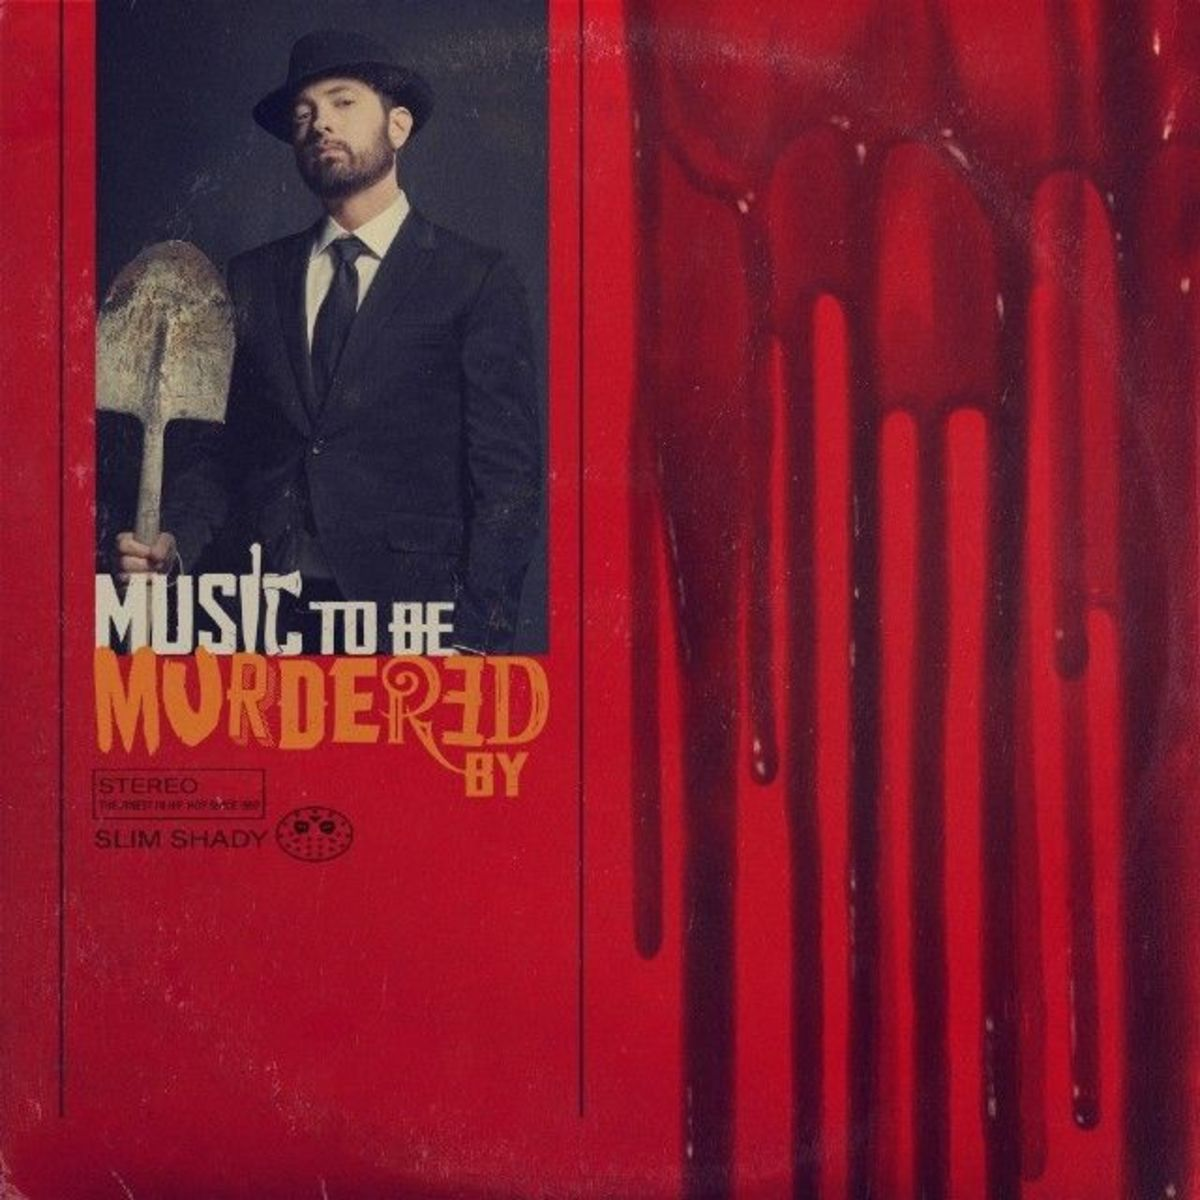 ''Music To Be Murdered By'' album cover